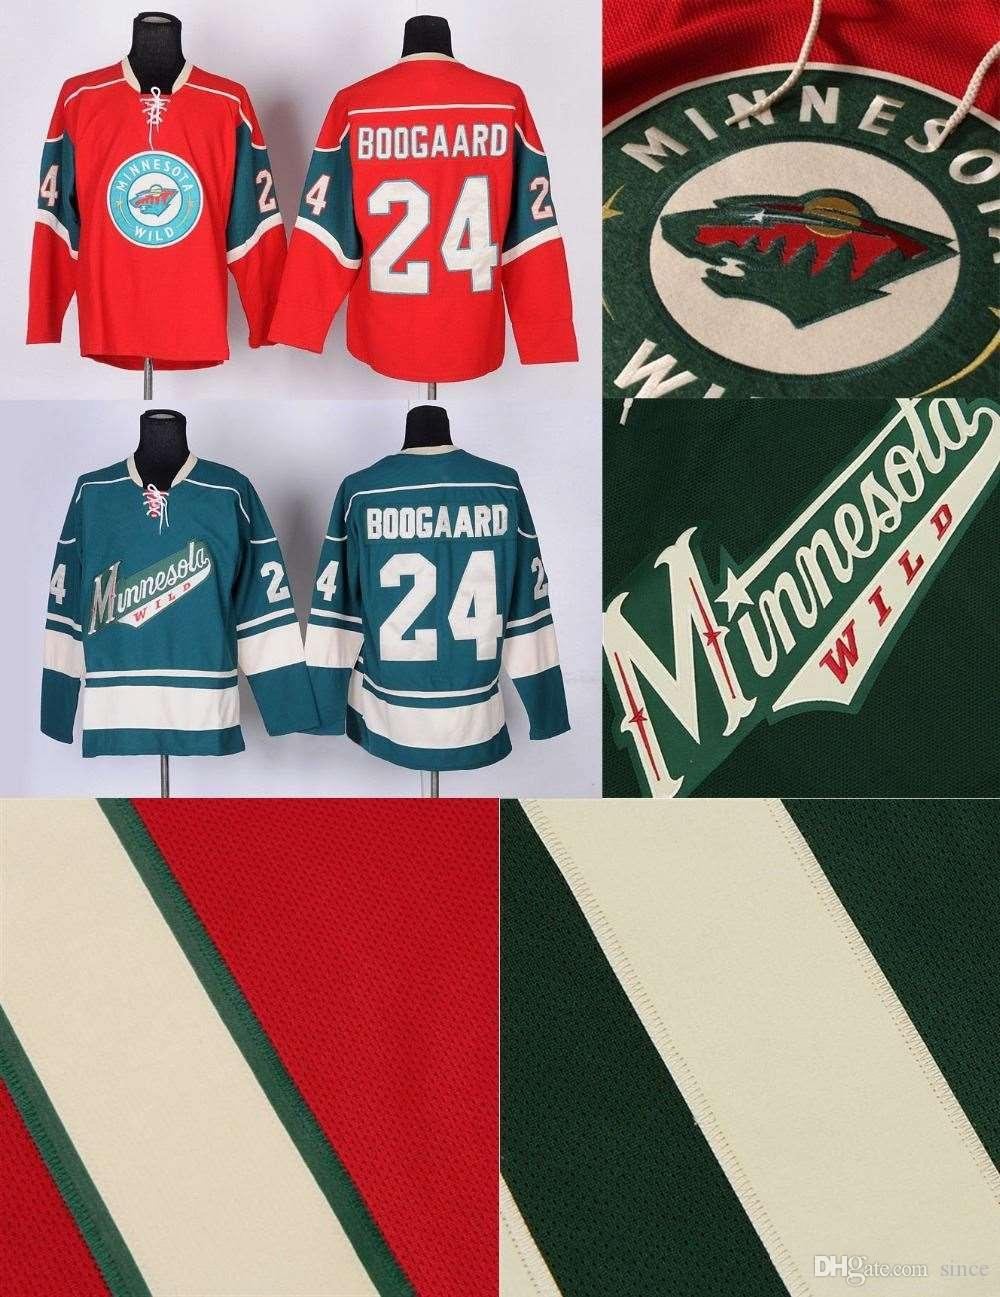 best website ff7f4 41d6f 2016 New, Cheap Ice Hockey Jersey Men s Minnesota Wild #24 Derek Boogaard  Authentic Hockey Jersey Red/Green,NEWStitched,Embroidery Logo,